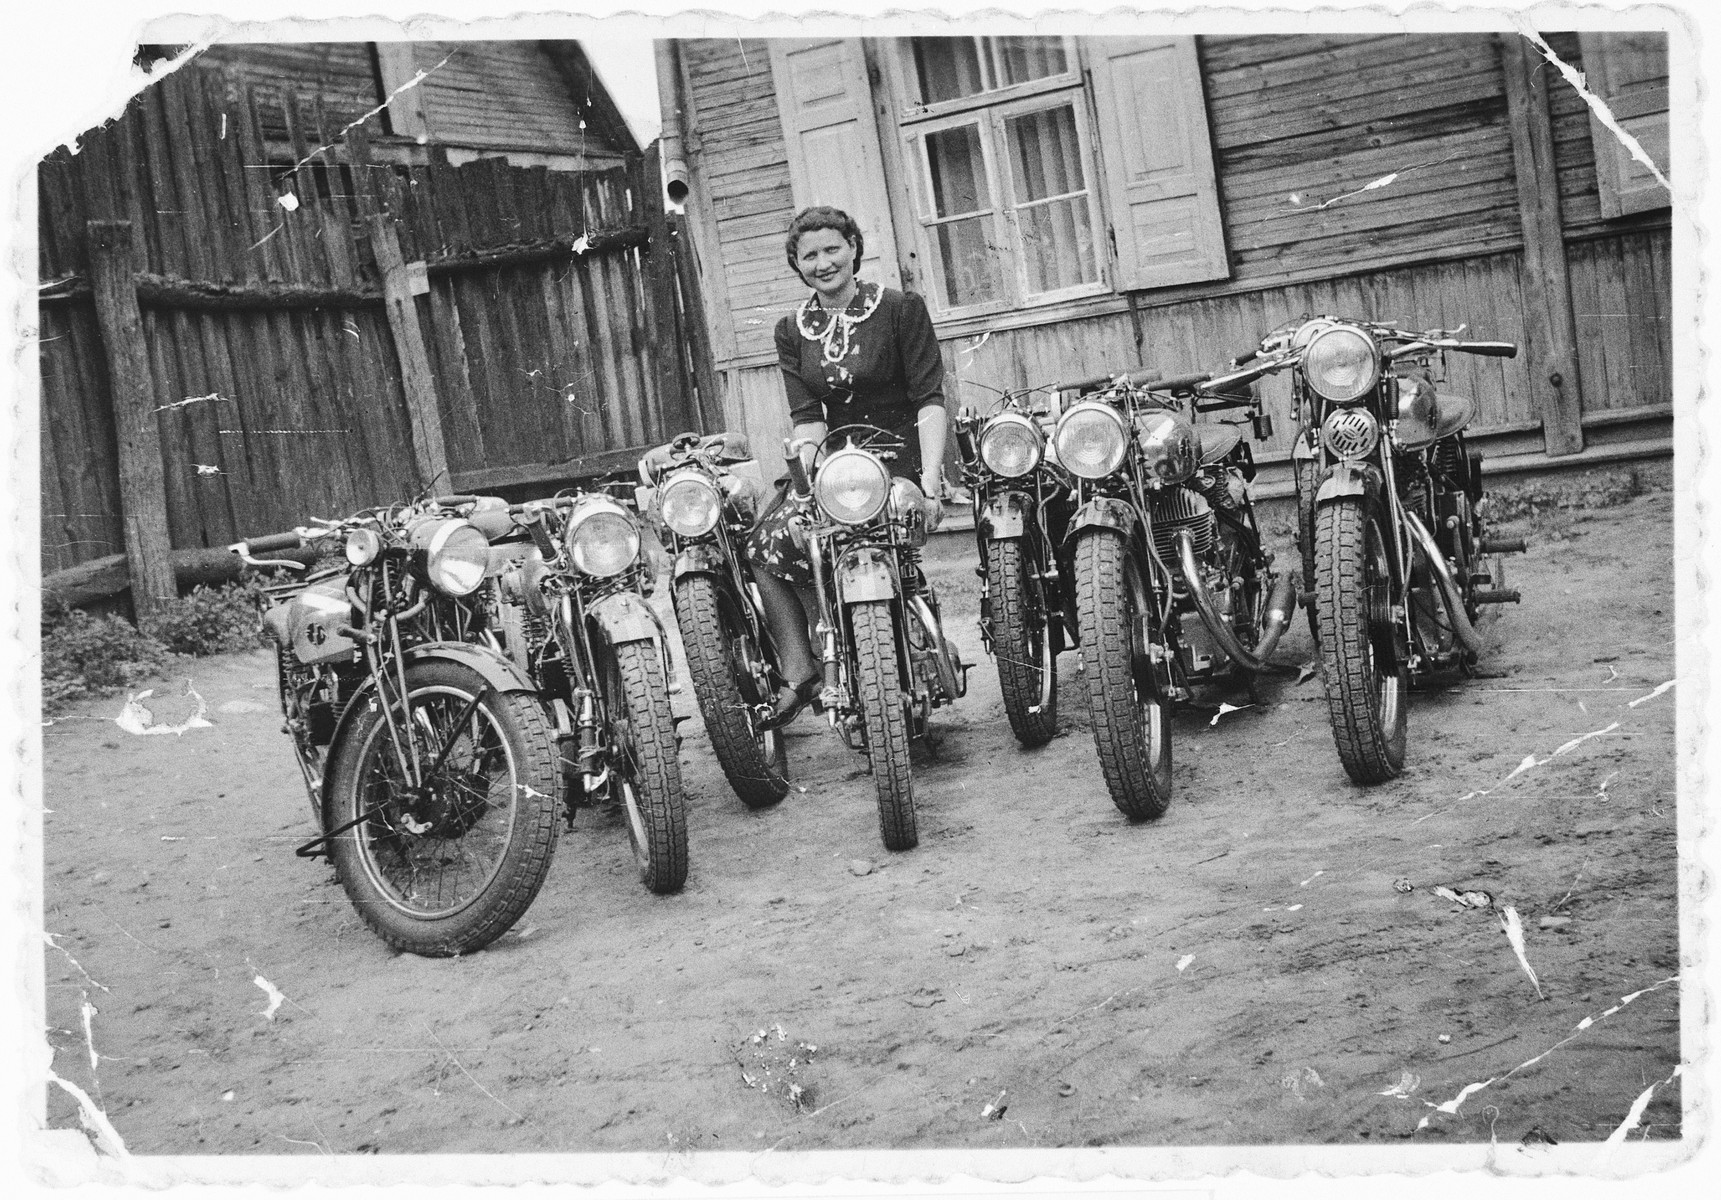 A young Jewish woman poses with her husband's inventory of motorcycles in Kaunas, Lithuania.  Pictured is Eta Ipp in front of the home of her father-in-law, Priedel Ipp.